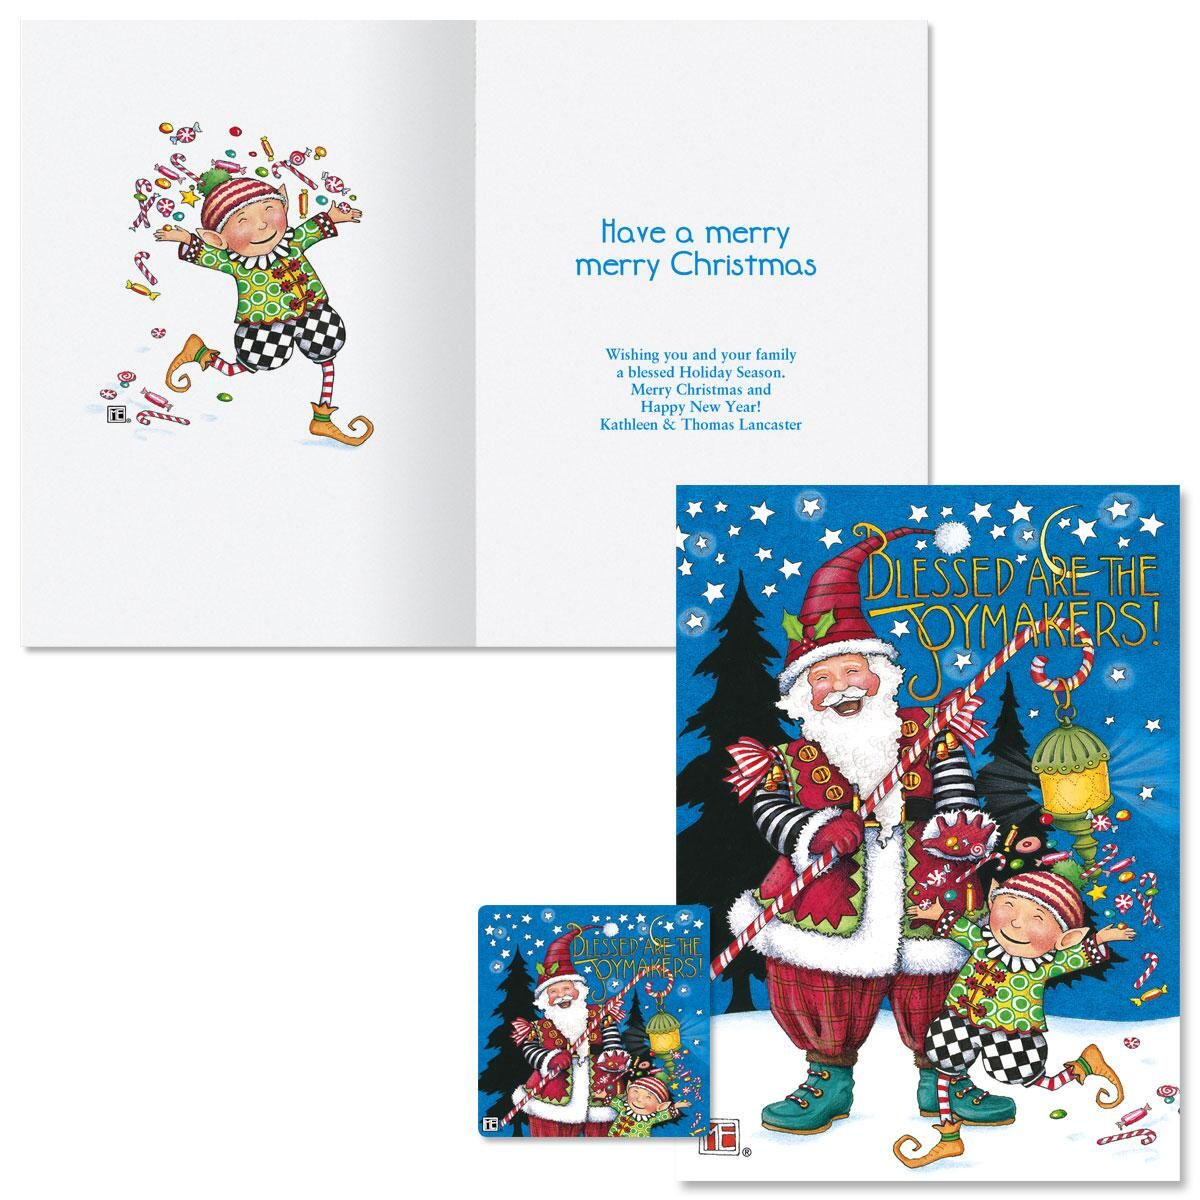 Joymakers Christmas Cards -  Personalized